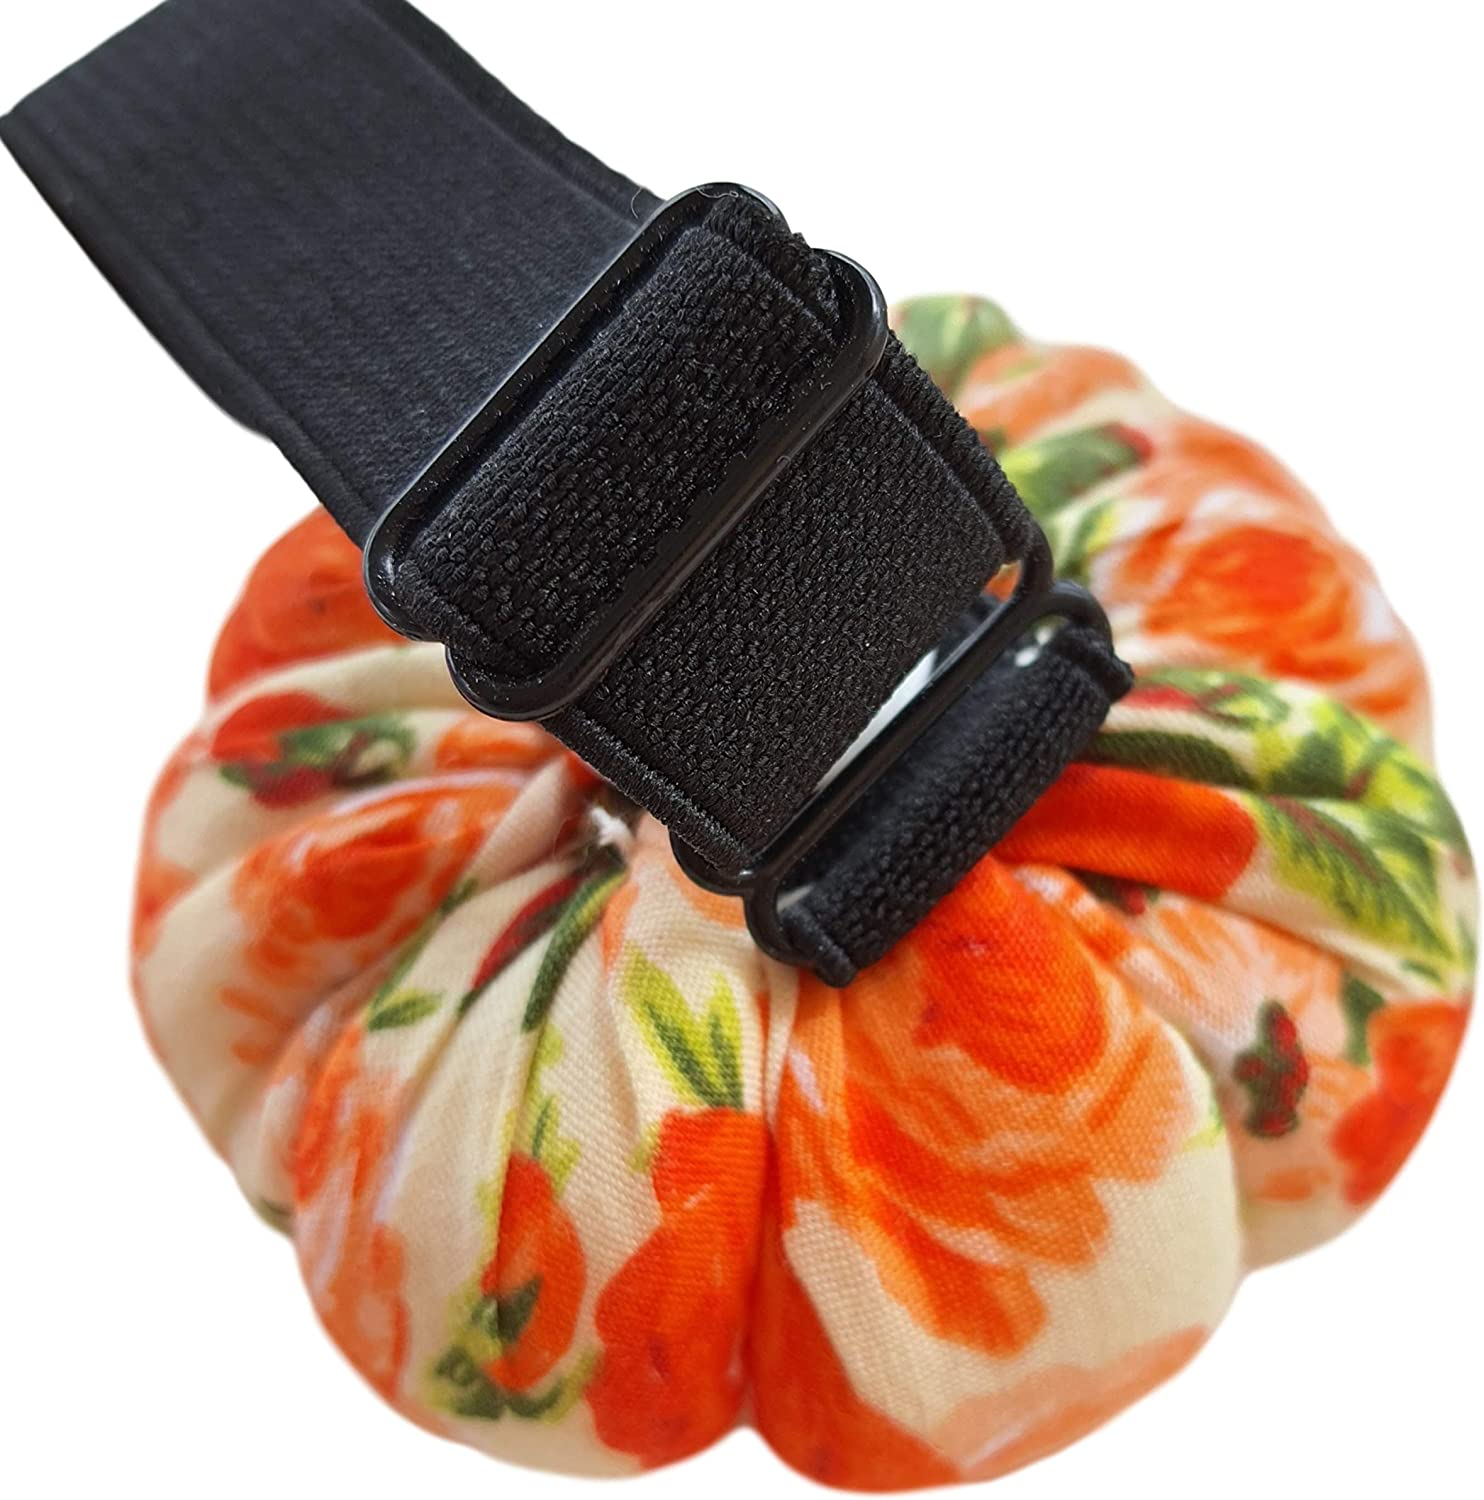 CUSHYSTORE Orange Floral Flower Wrist Pin Needle Cushion Pincushion for Sewing with Adjustable Elastic Strap Sewer Gift